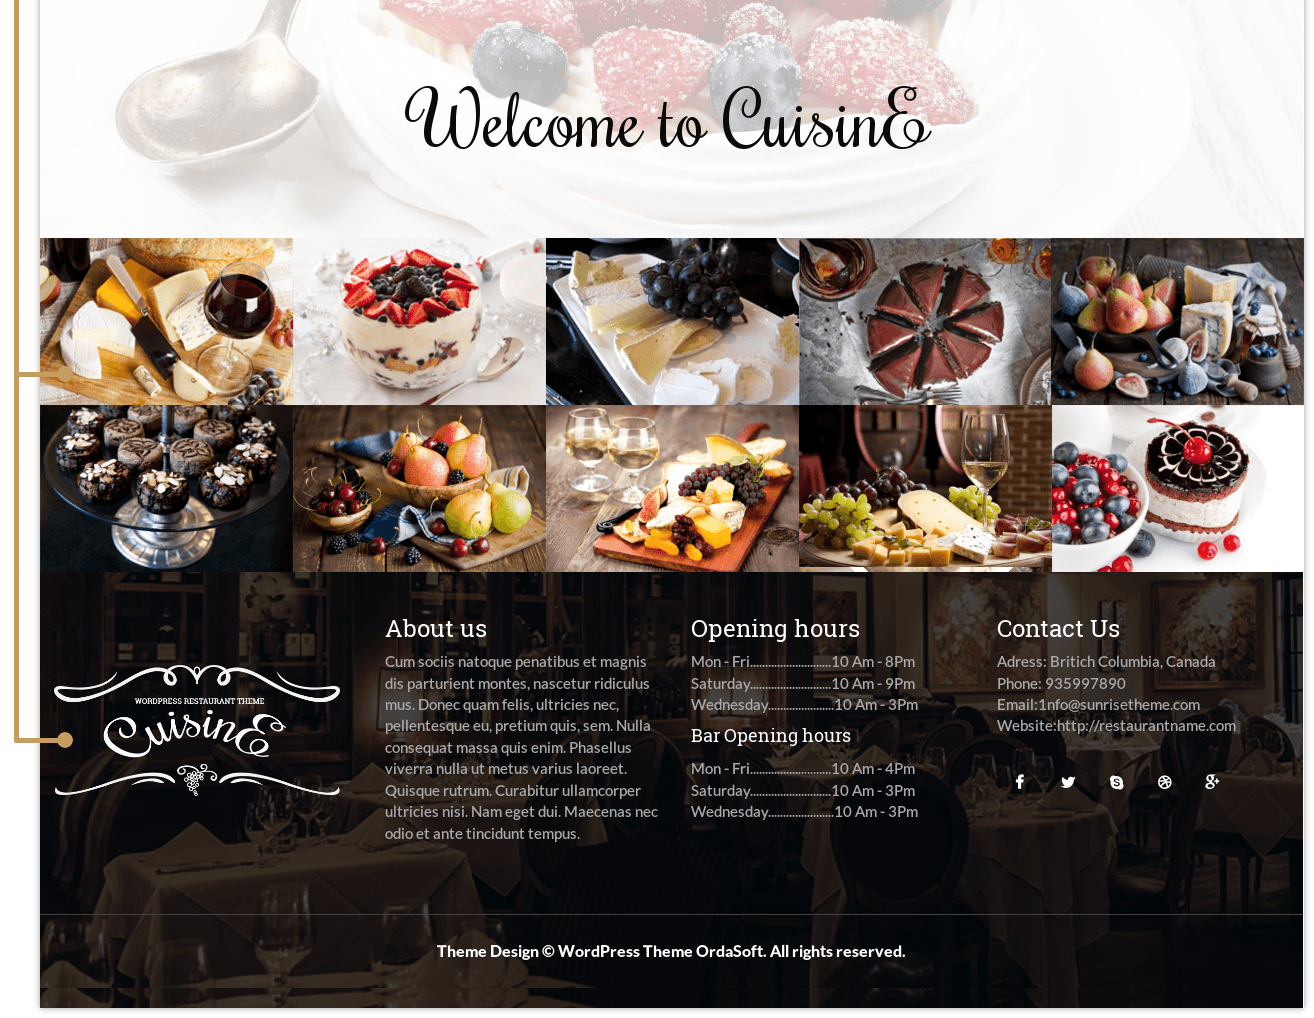 Cuisine - WordPress restaurant theme, footer